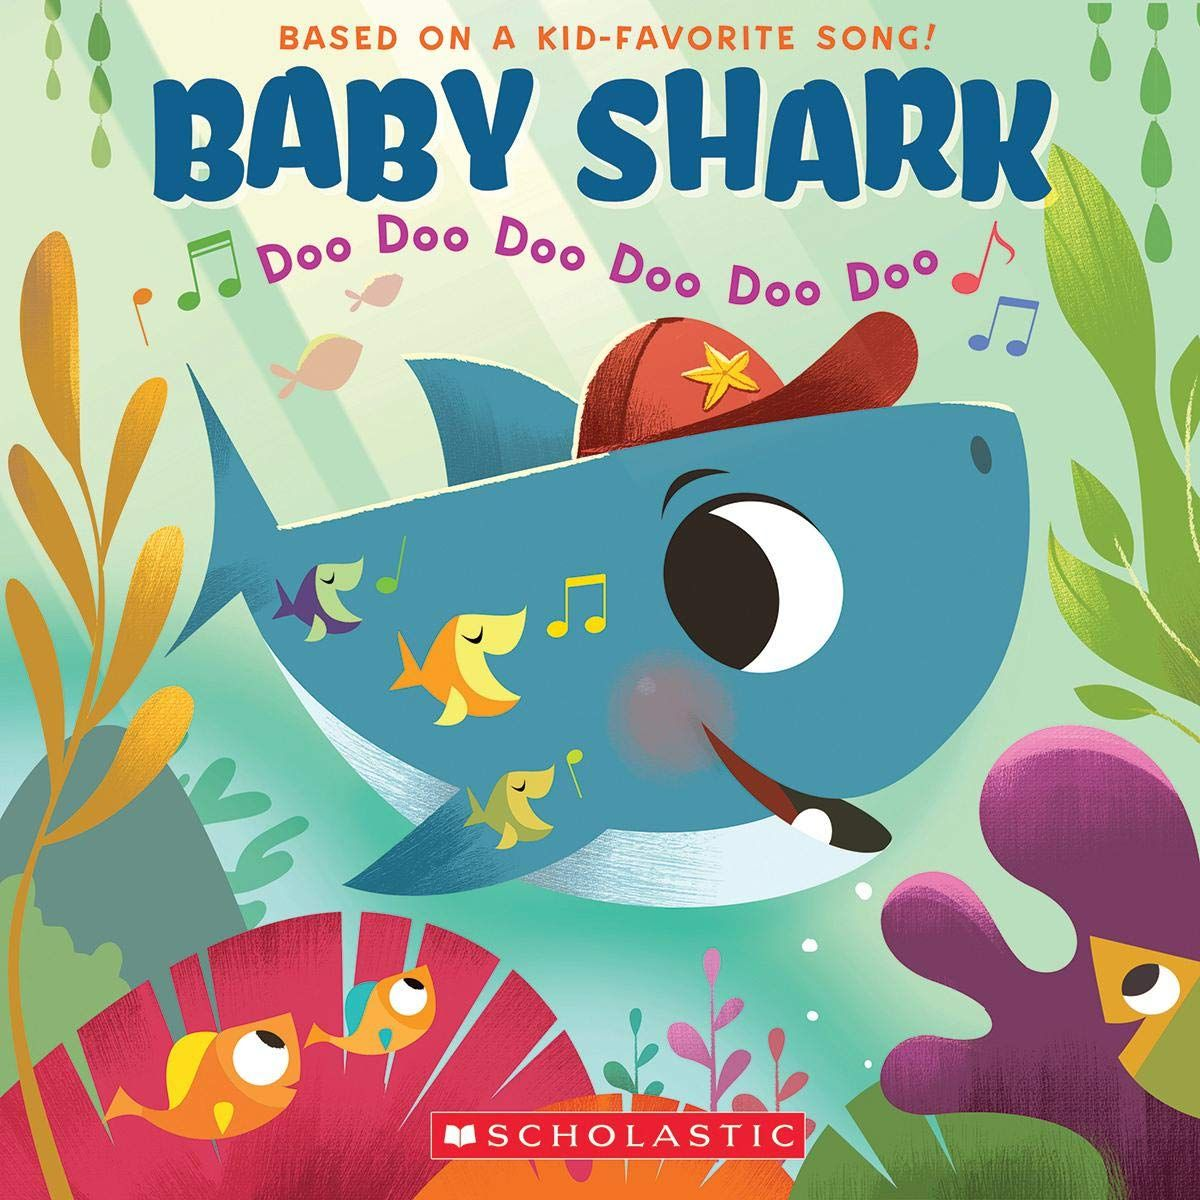 Baby Shark Paperback Book Only 3.91! Baby shark, Baby